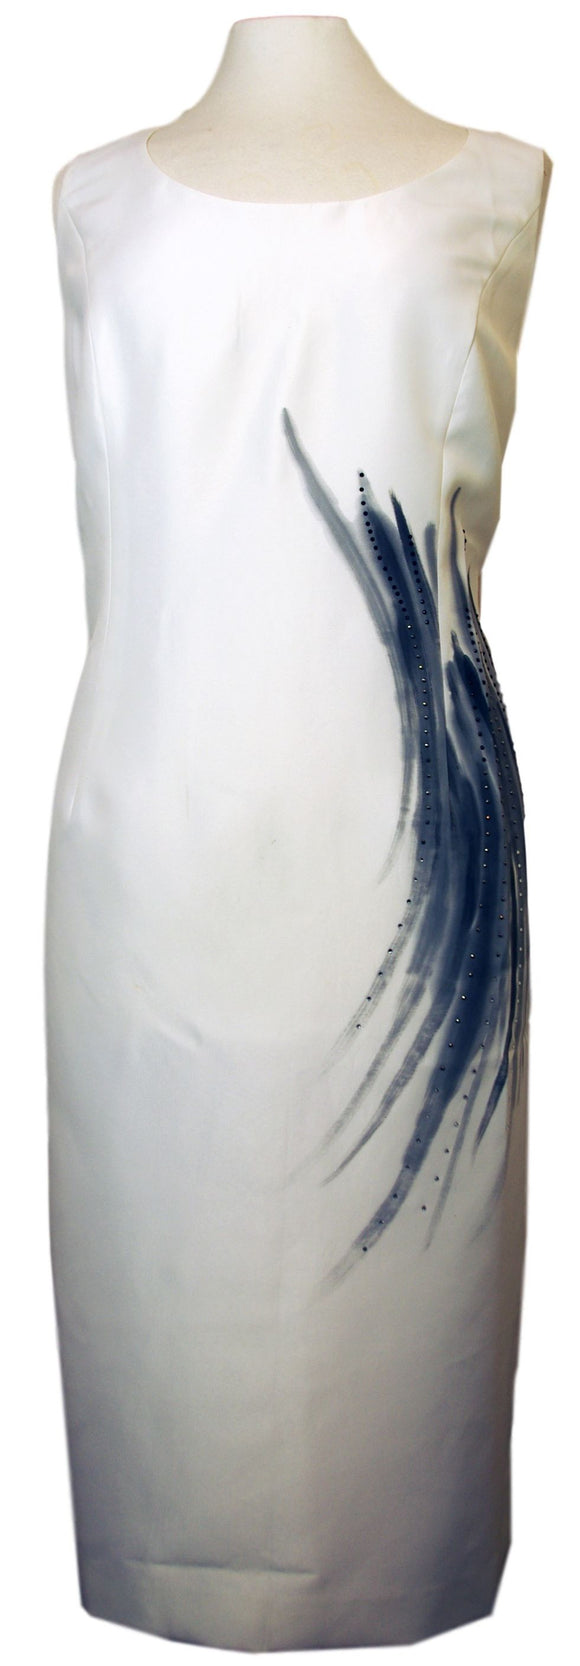 Hand Painted Ivory Silk Dress with Matching Hand Painted Bolero